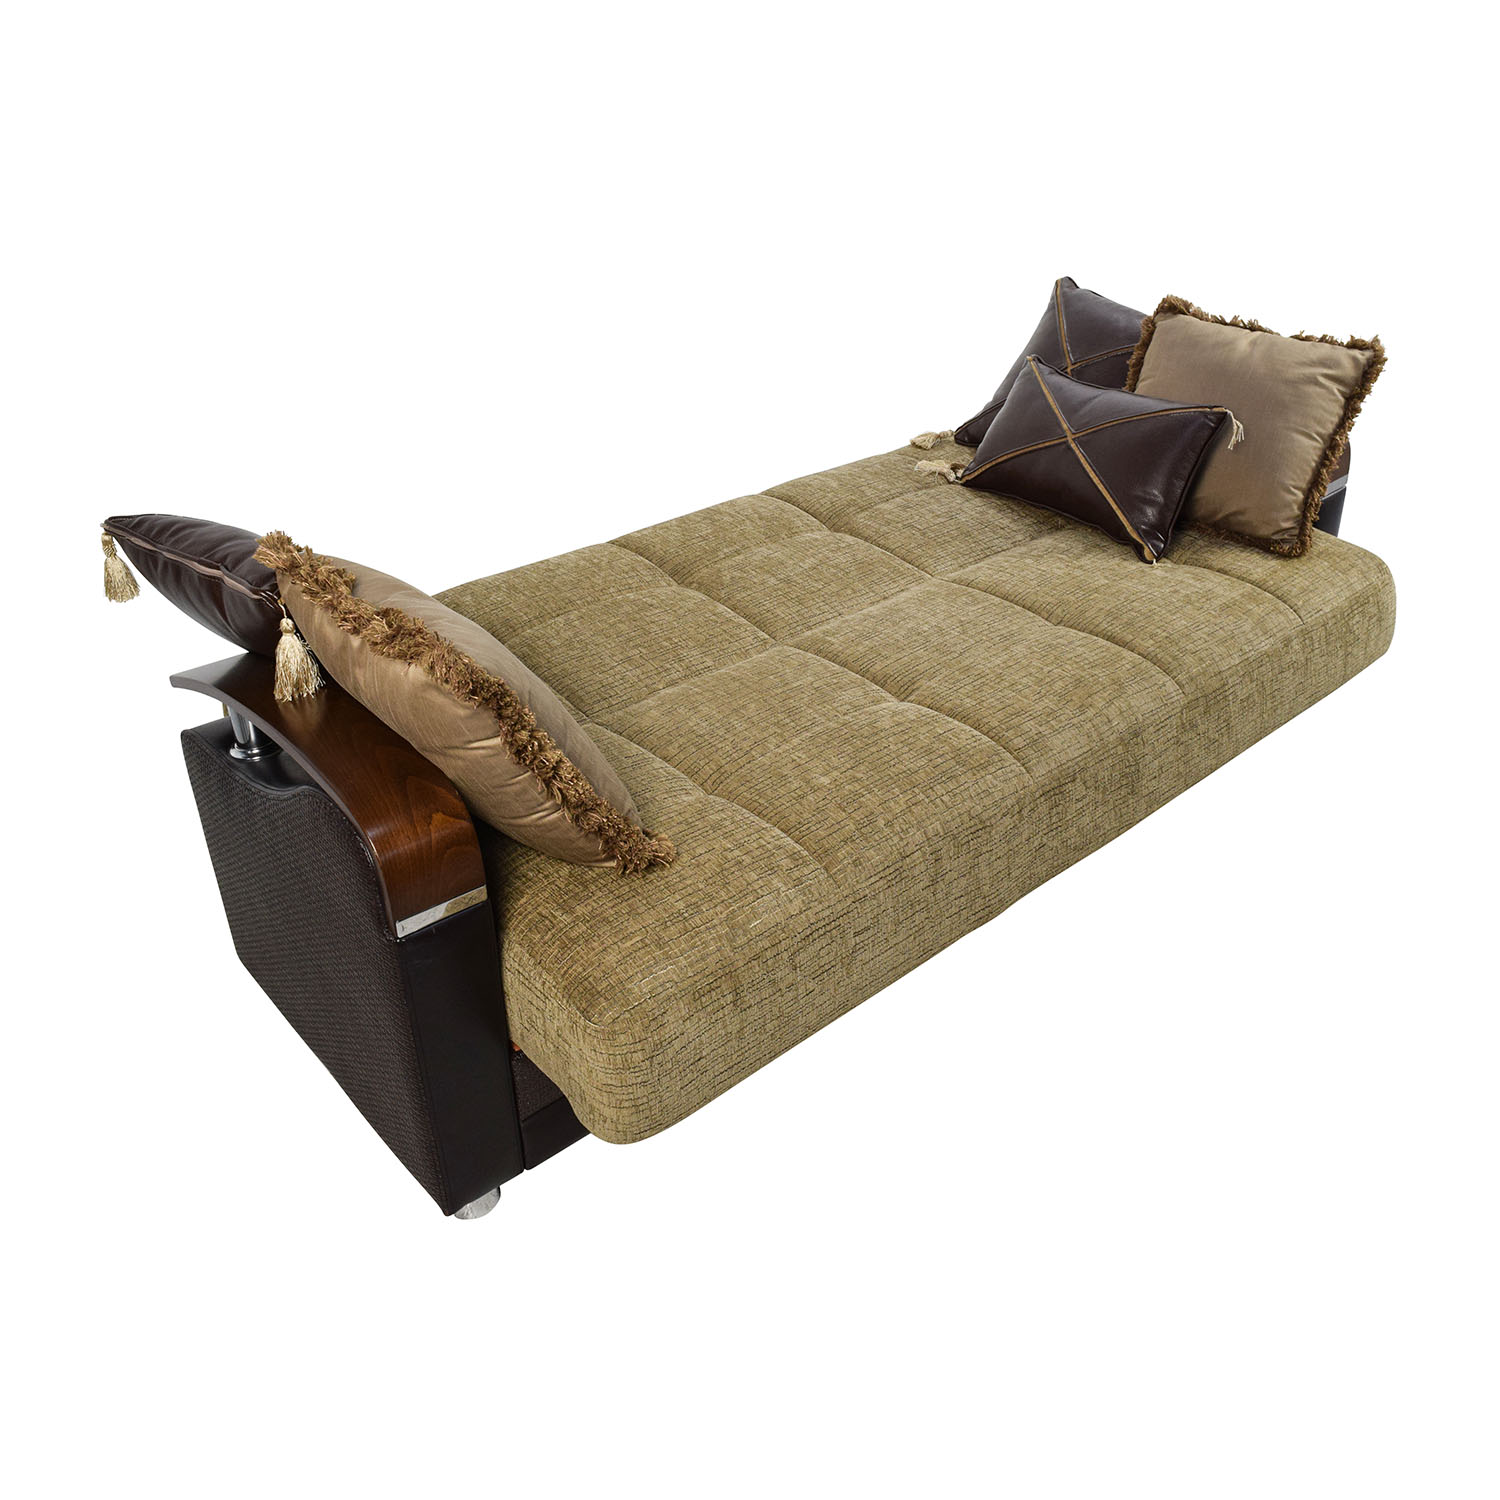 Luna sofa bed with storage wwwenergywardennet for Sectional sleeper sofa with storage and pillows